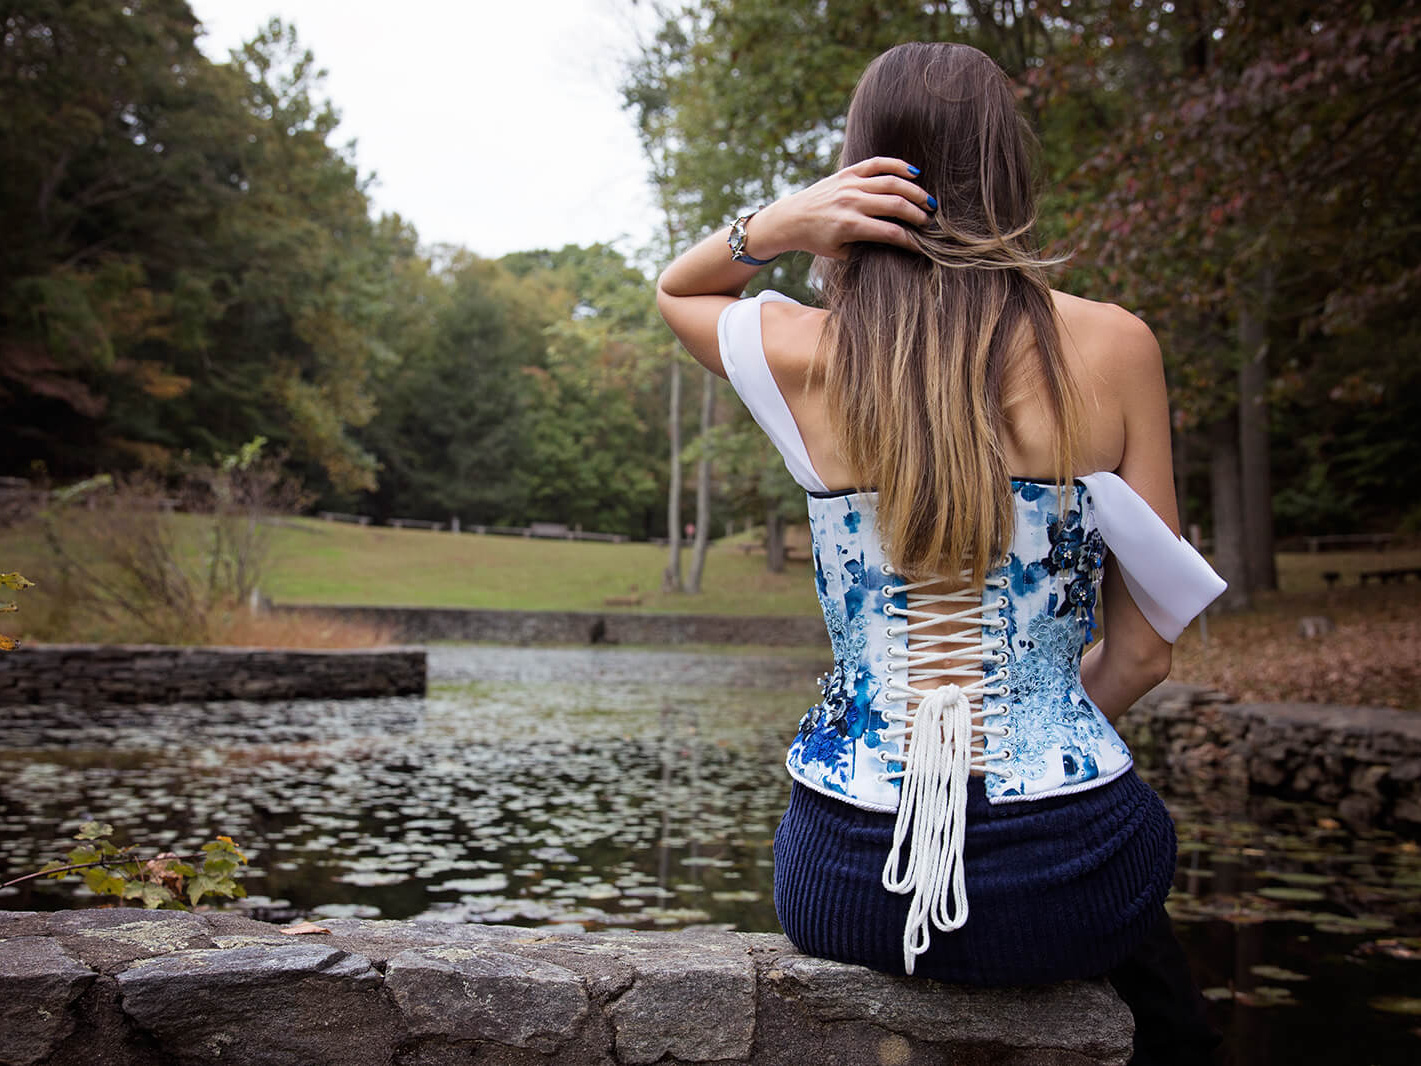 Woman in Off-Shoulder Corset sitting on stone near water